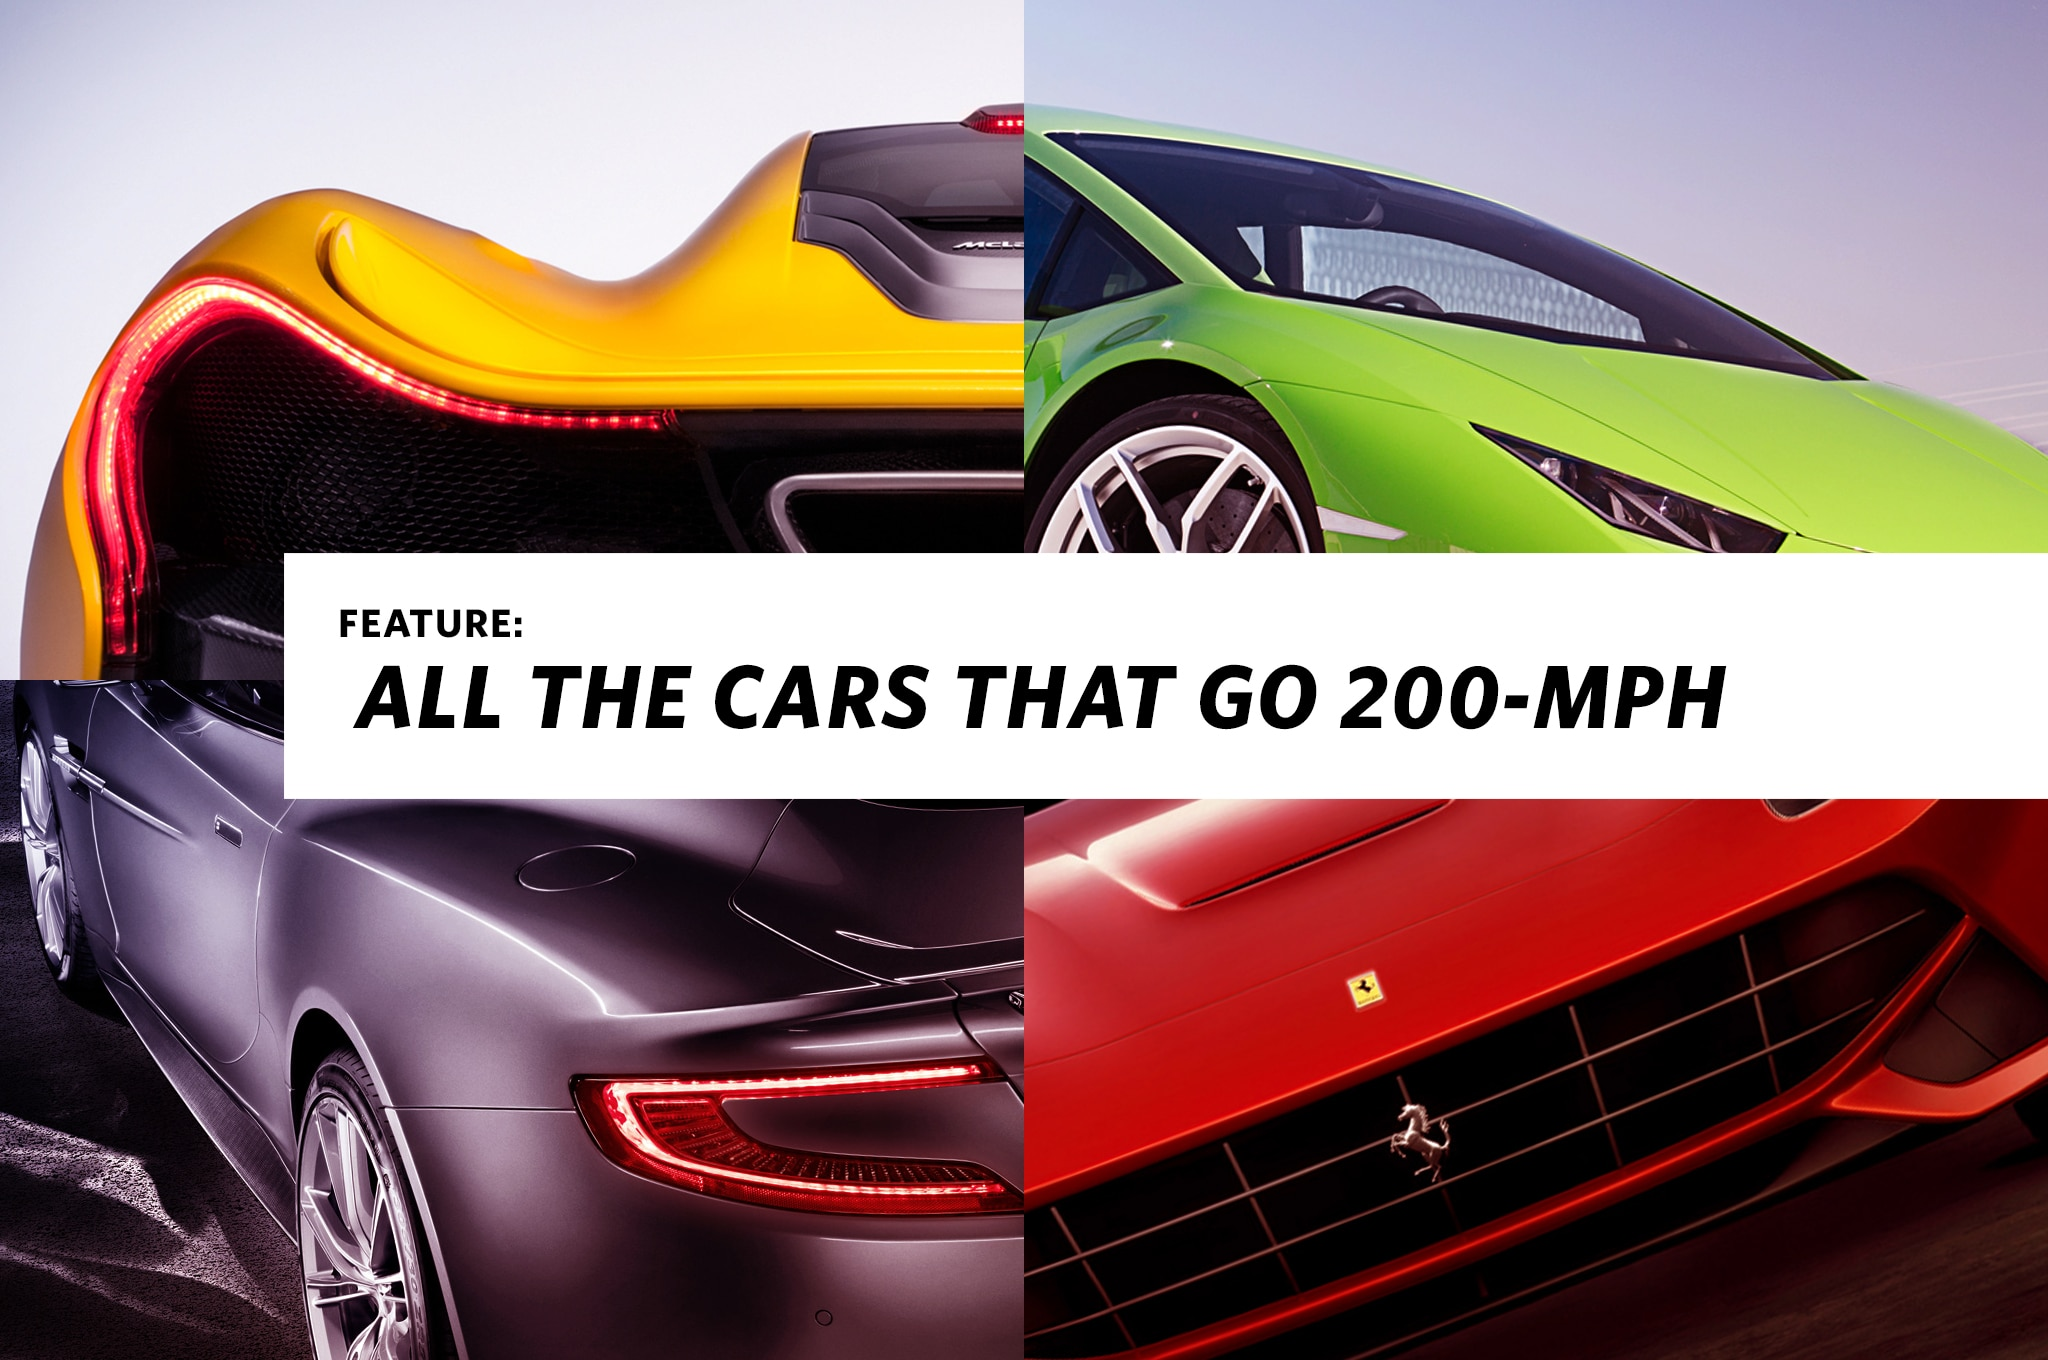 All The Cars That Go 200 MPH Lead